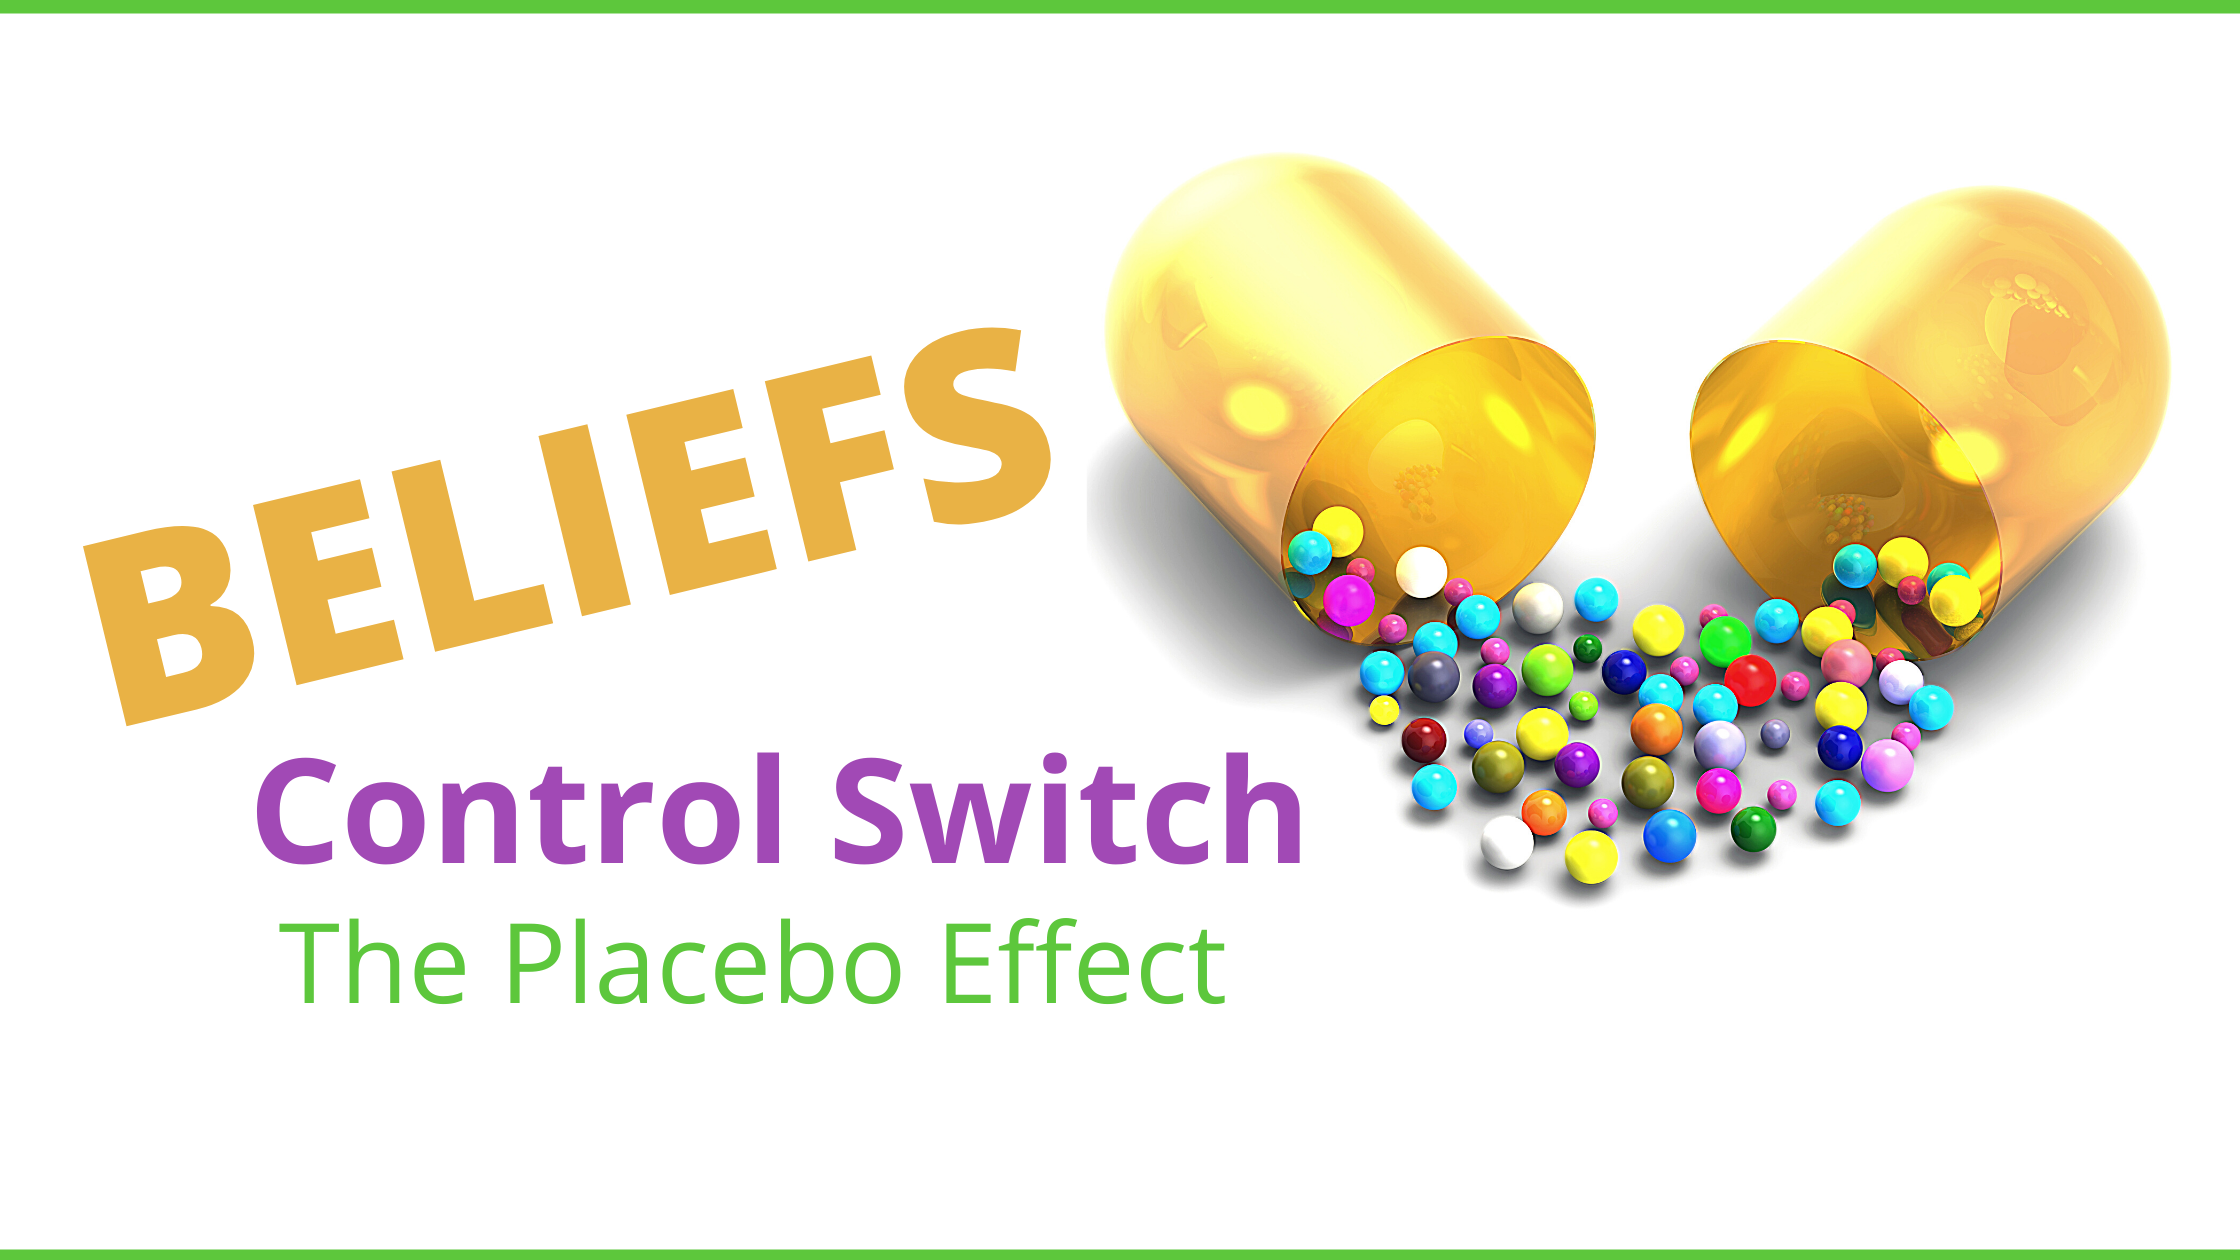 BELIEFS -Control Switch The Placebo Effect